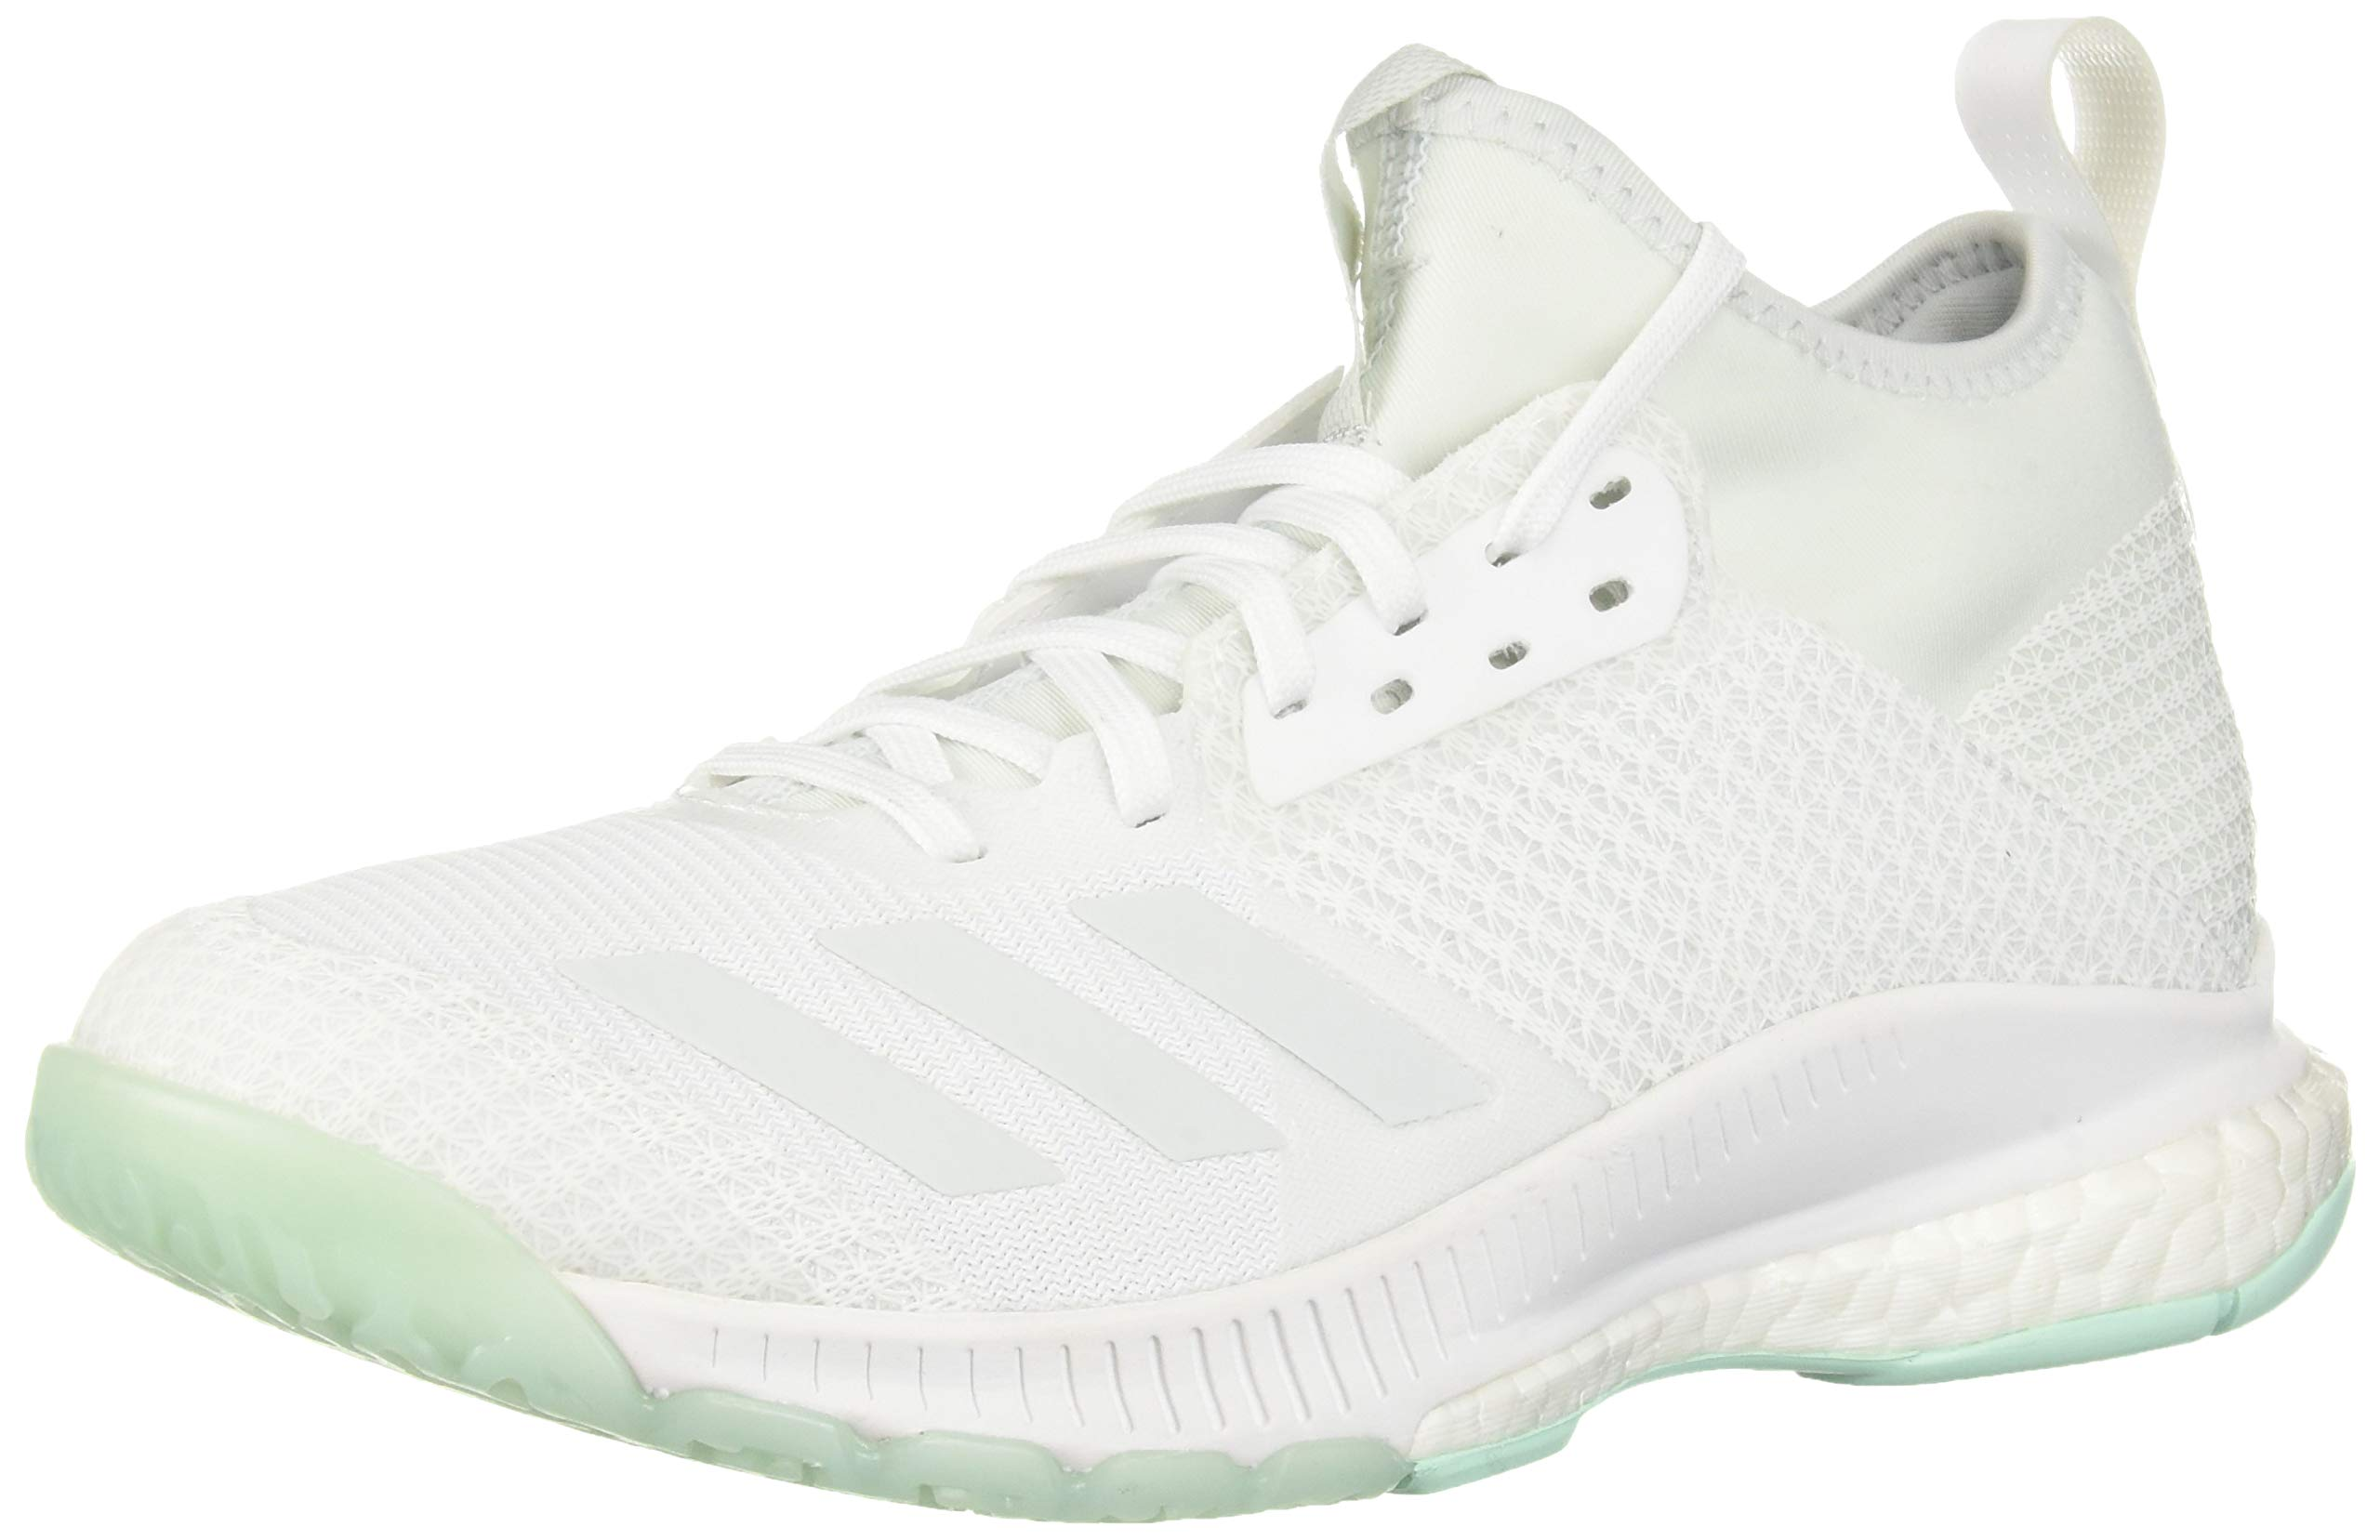 adidas Women's Crazyflight X 2 Mid Volleyball Shoe, White/Blue Tint/Clear Mint, 12 M US by adidas